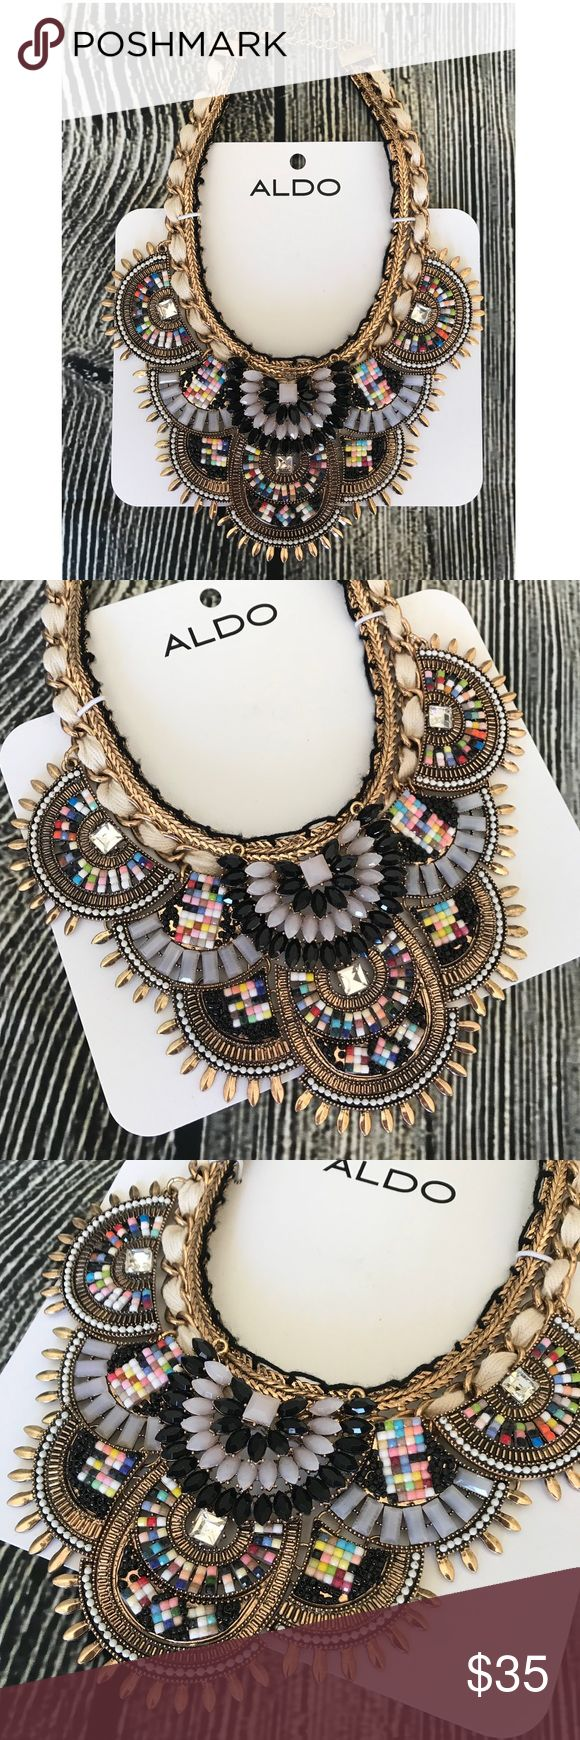 Aldo Statement Necklace Beautiful Statement Necklace. Aldo. New with Tags. Width 7.5 inches. Aldo Jewelry Necklaces